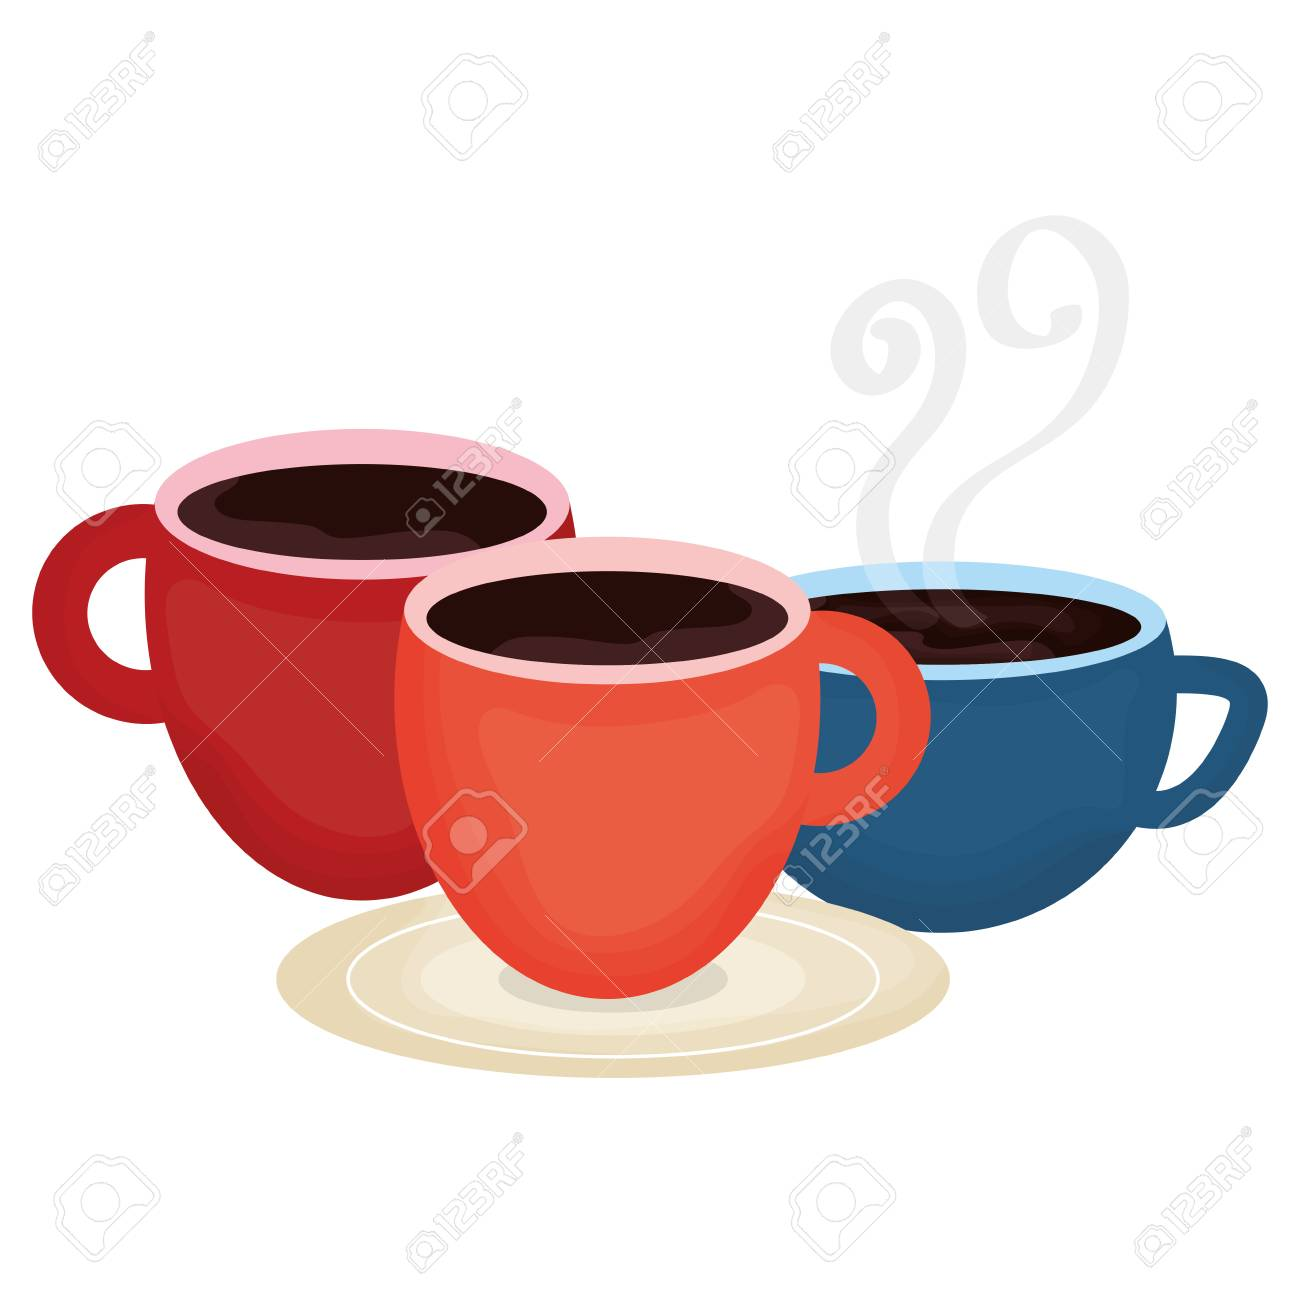 coffee cups drinks icons vector illustration design - 122748889